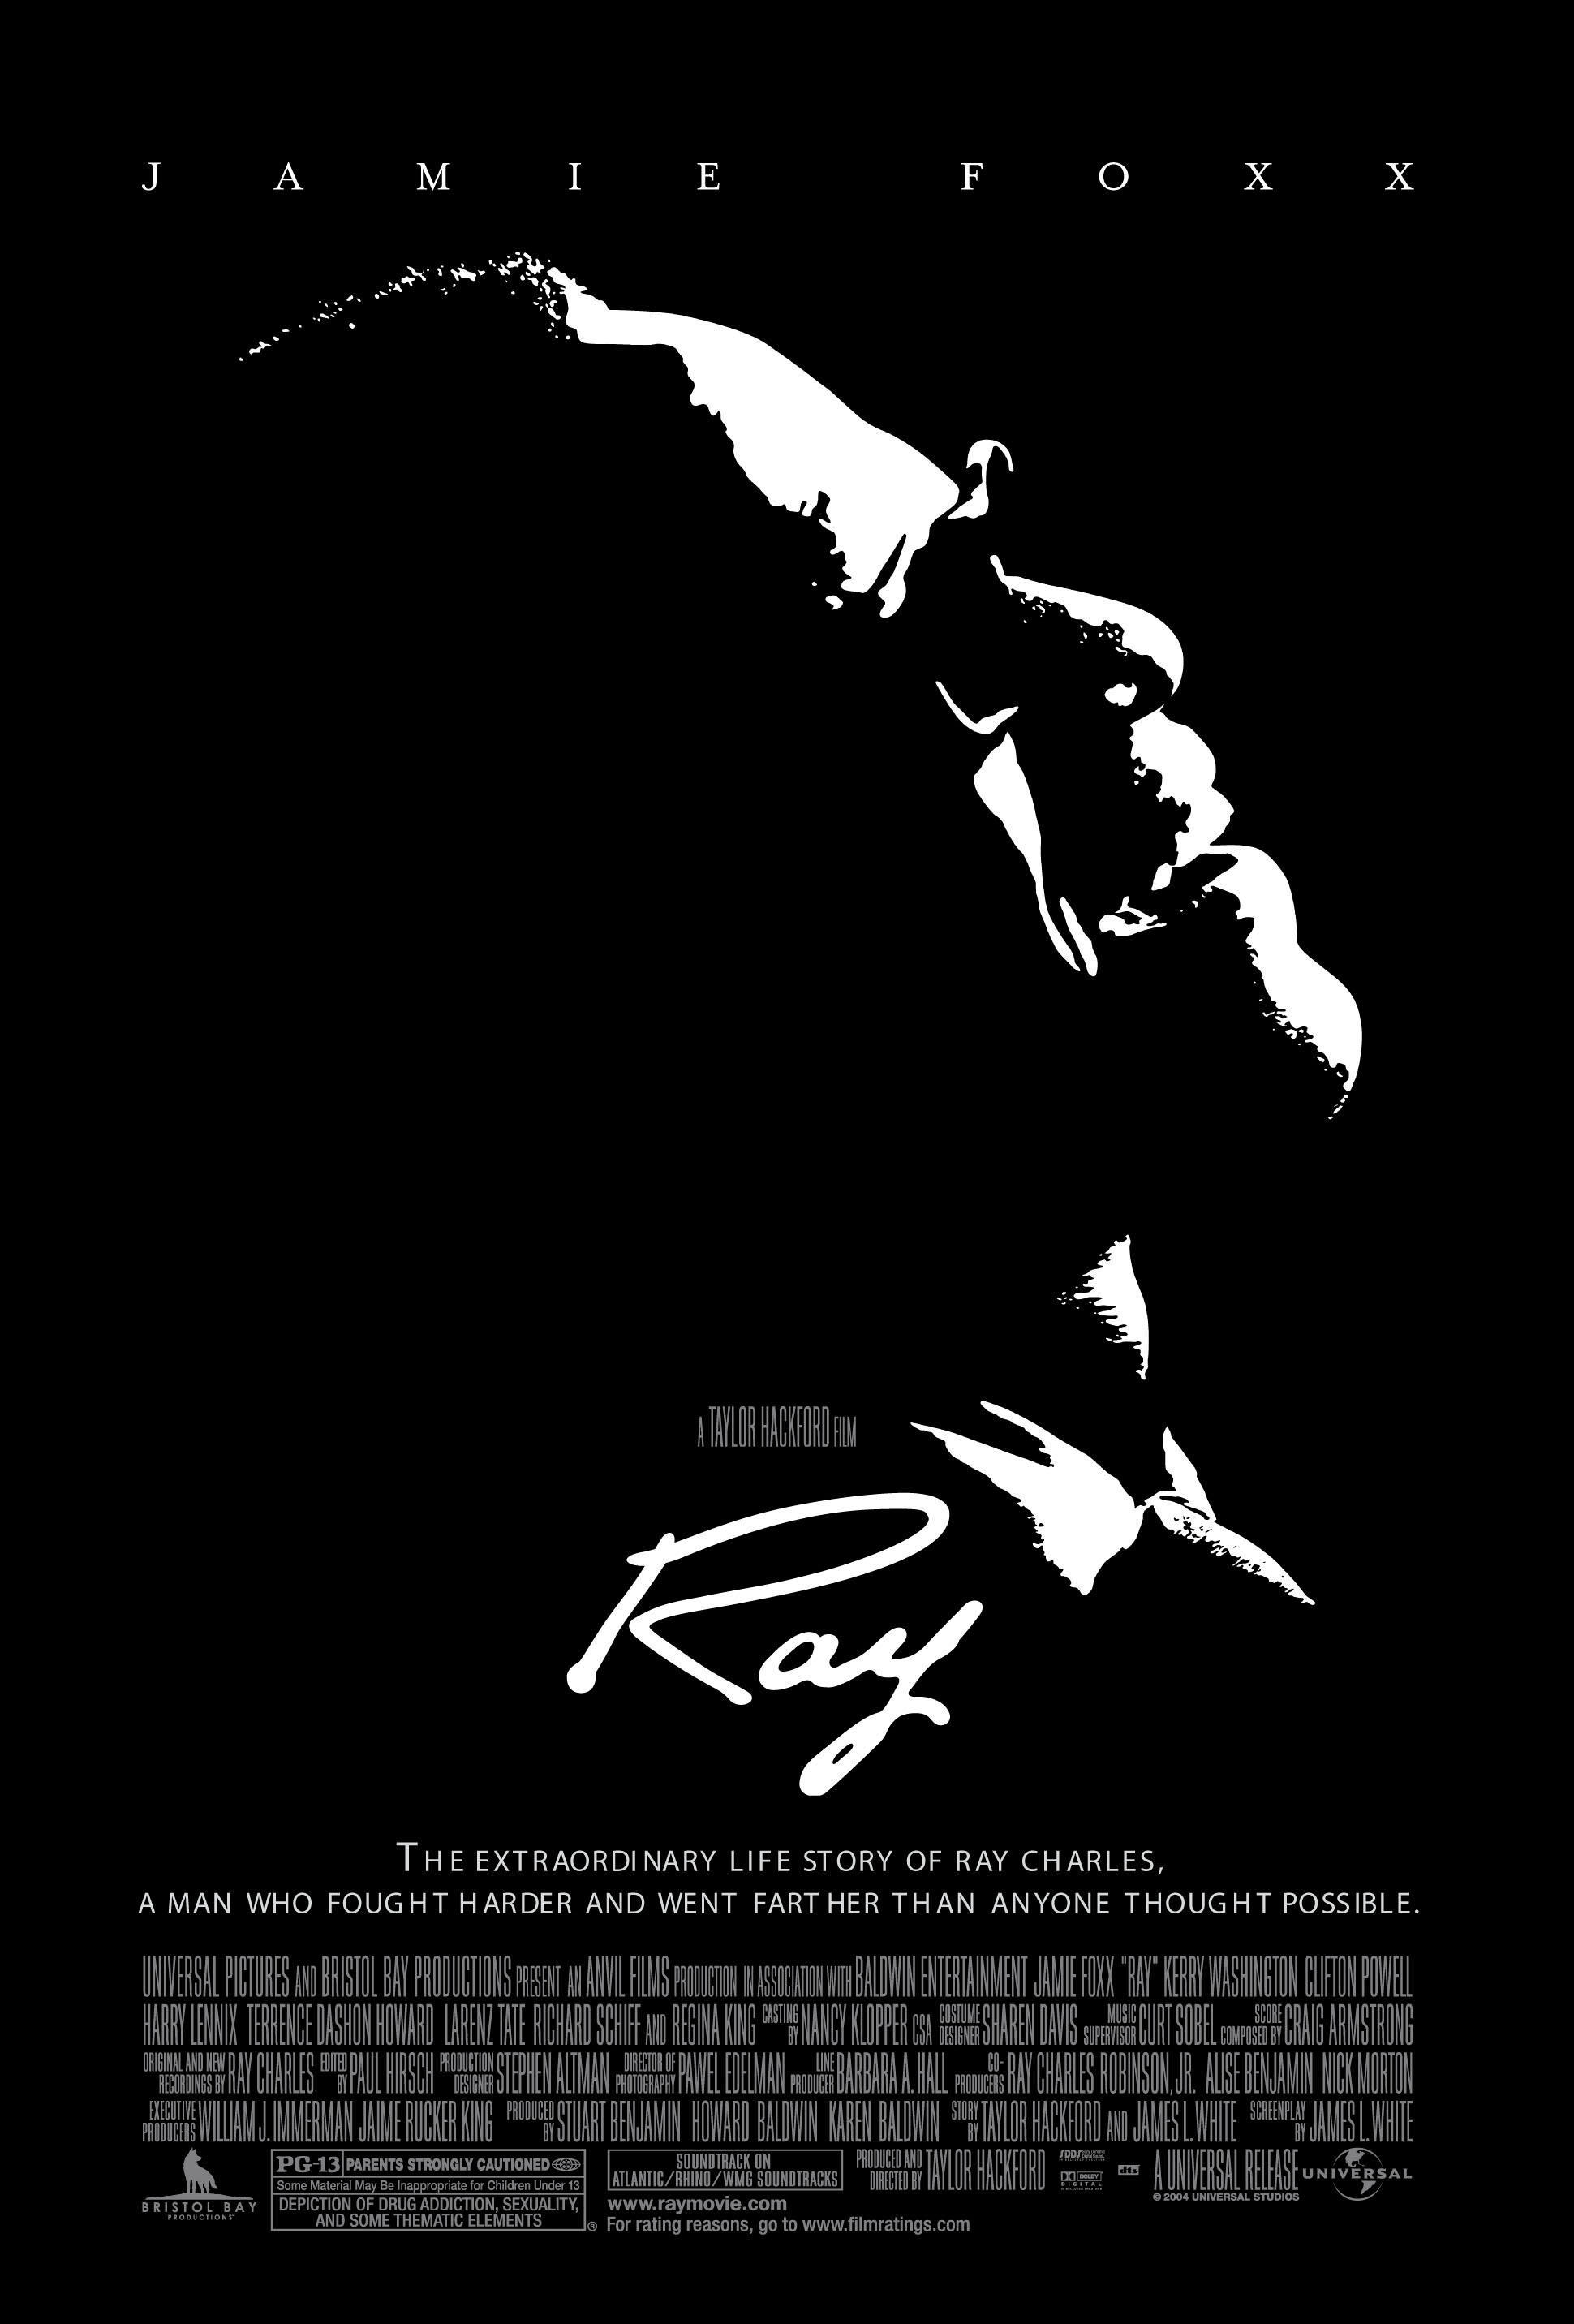 Ray, by Tailor Hackford, 2004